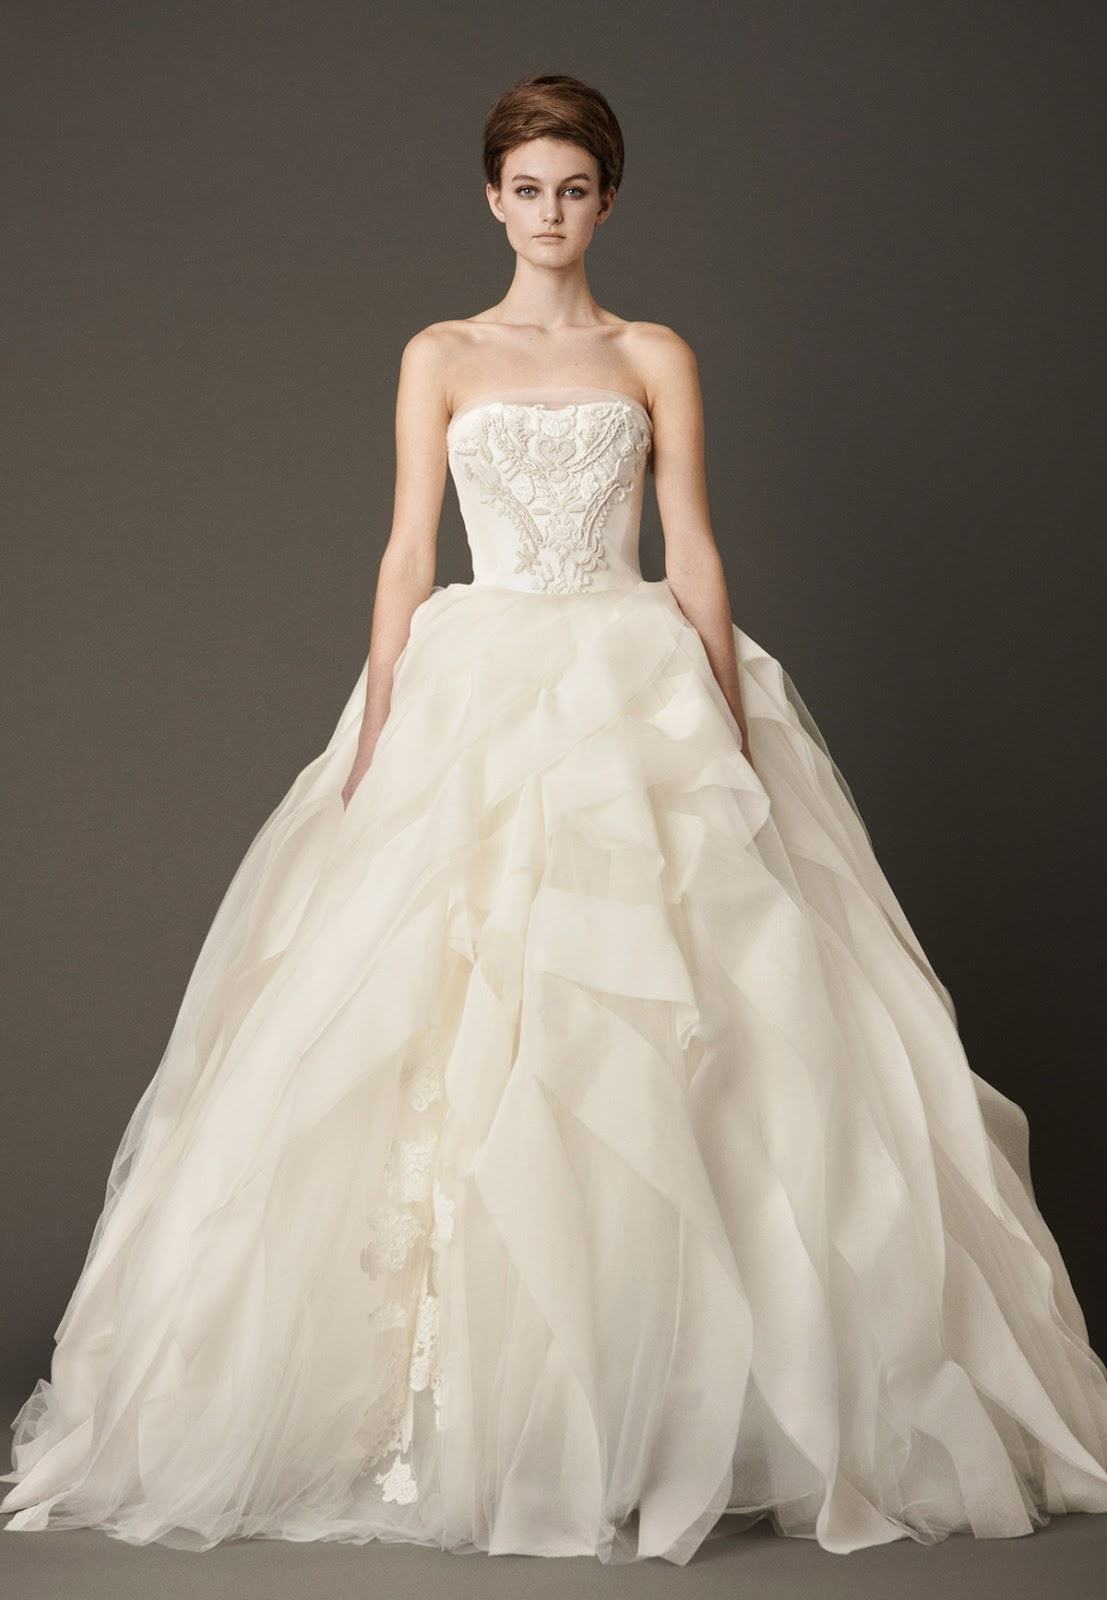 Bride Gowns Dressybridal Vera Wang Fall 2013 Ruffled Wedding Gowns